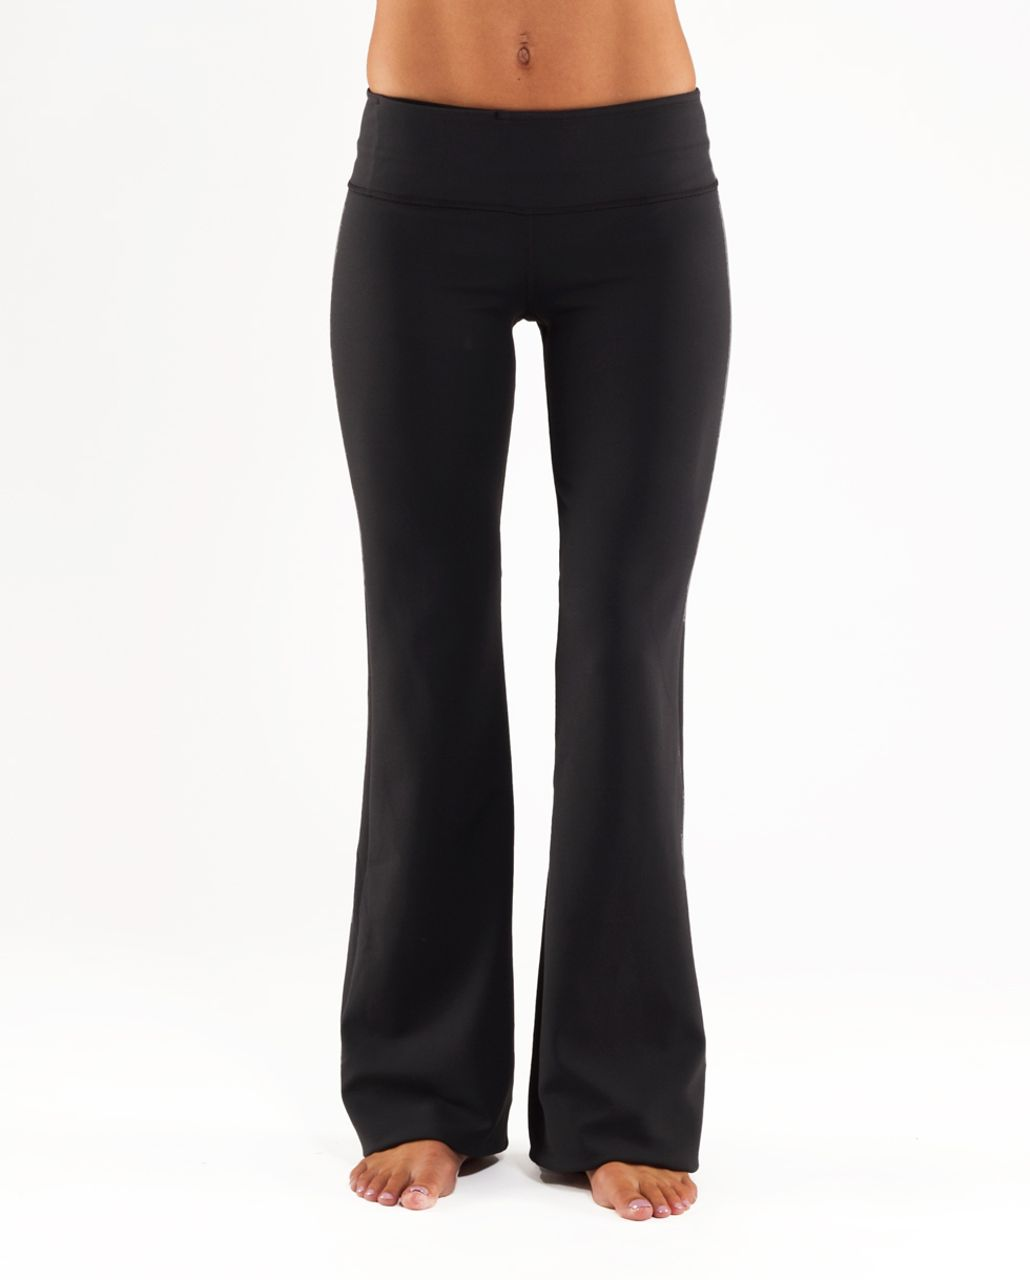 Lululemon Groove Pant (Tall) - Black /  Deep Coal